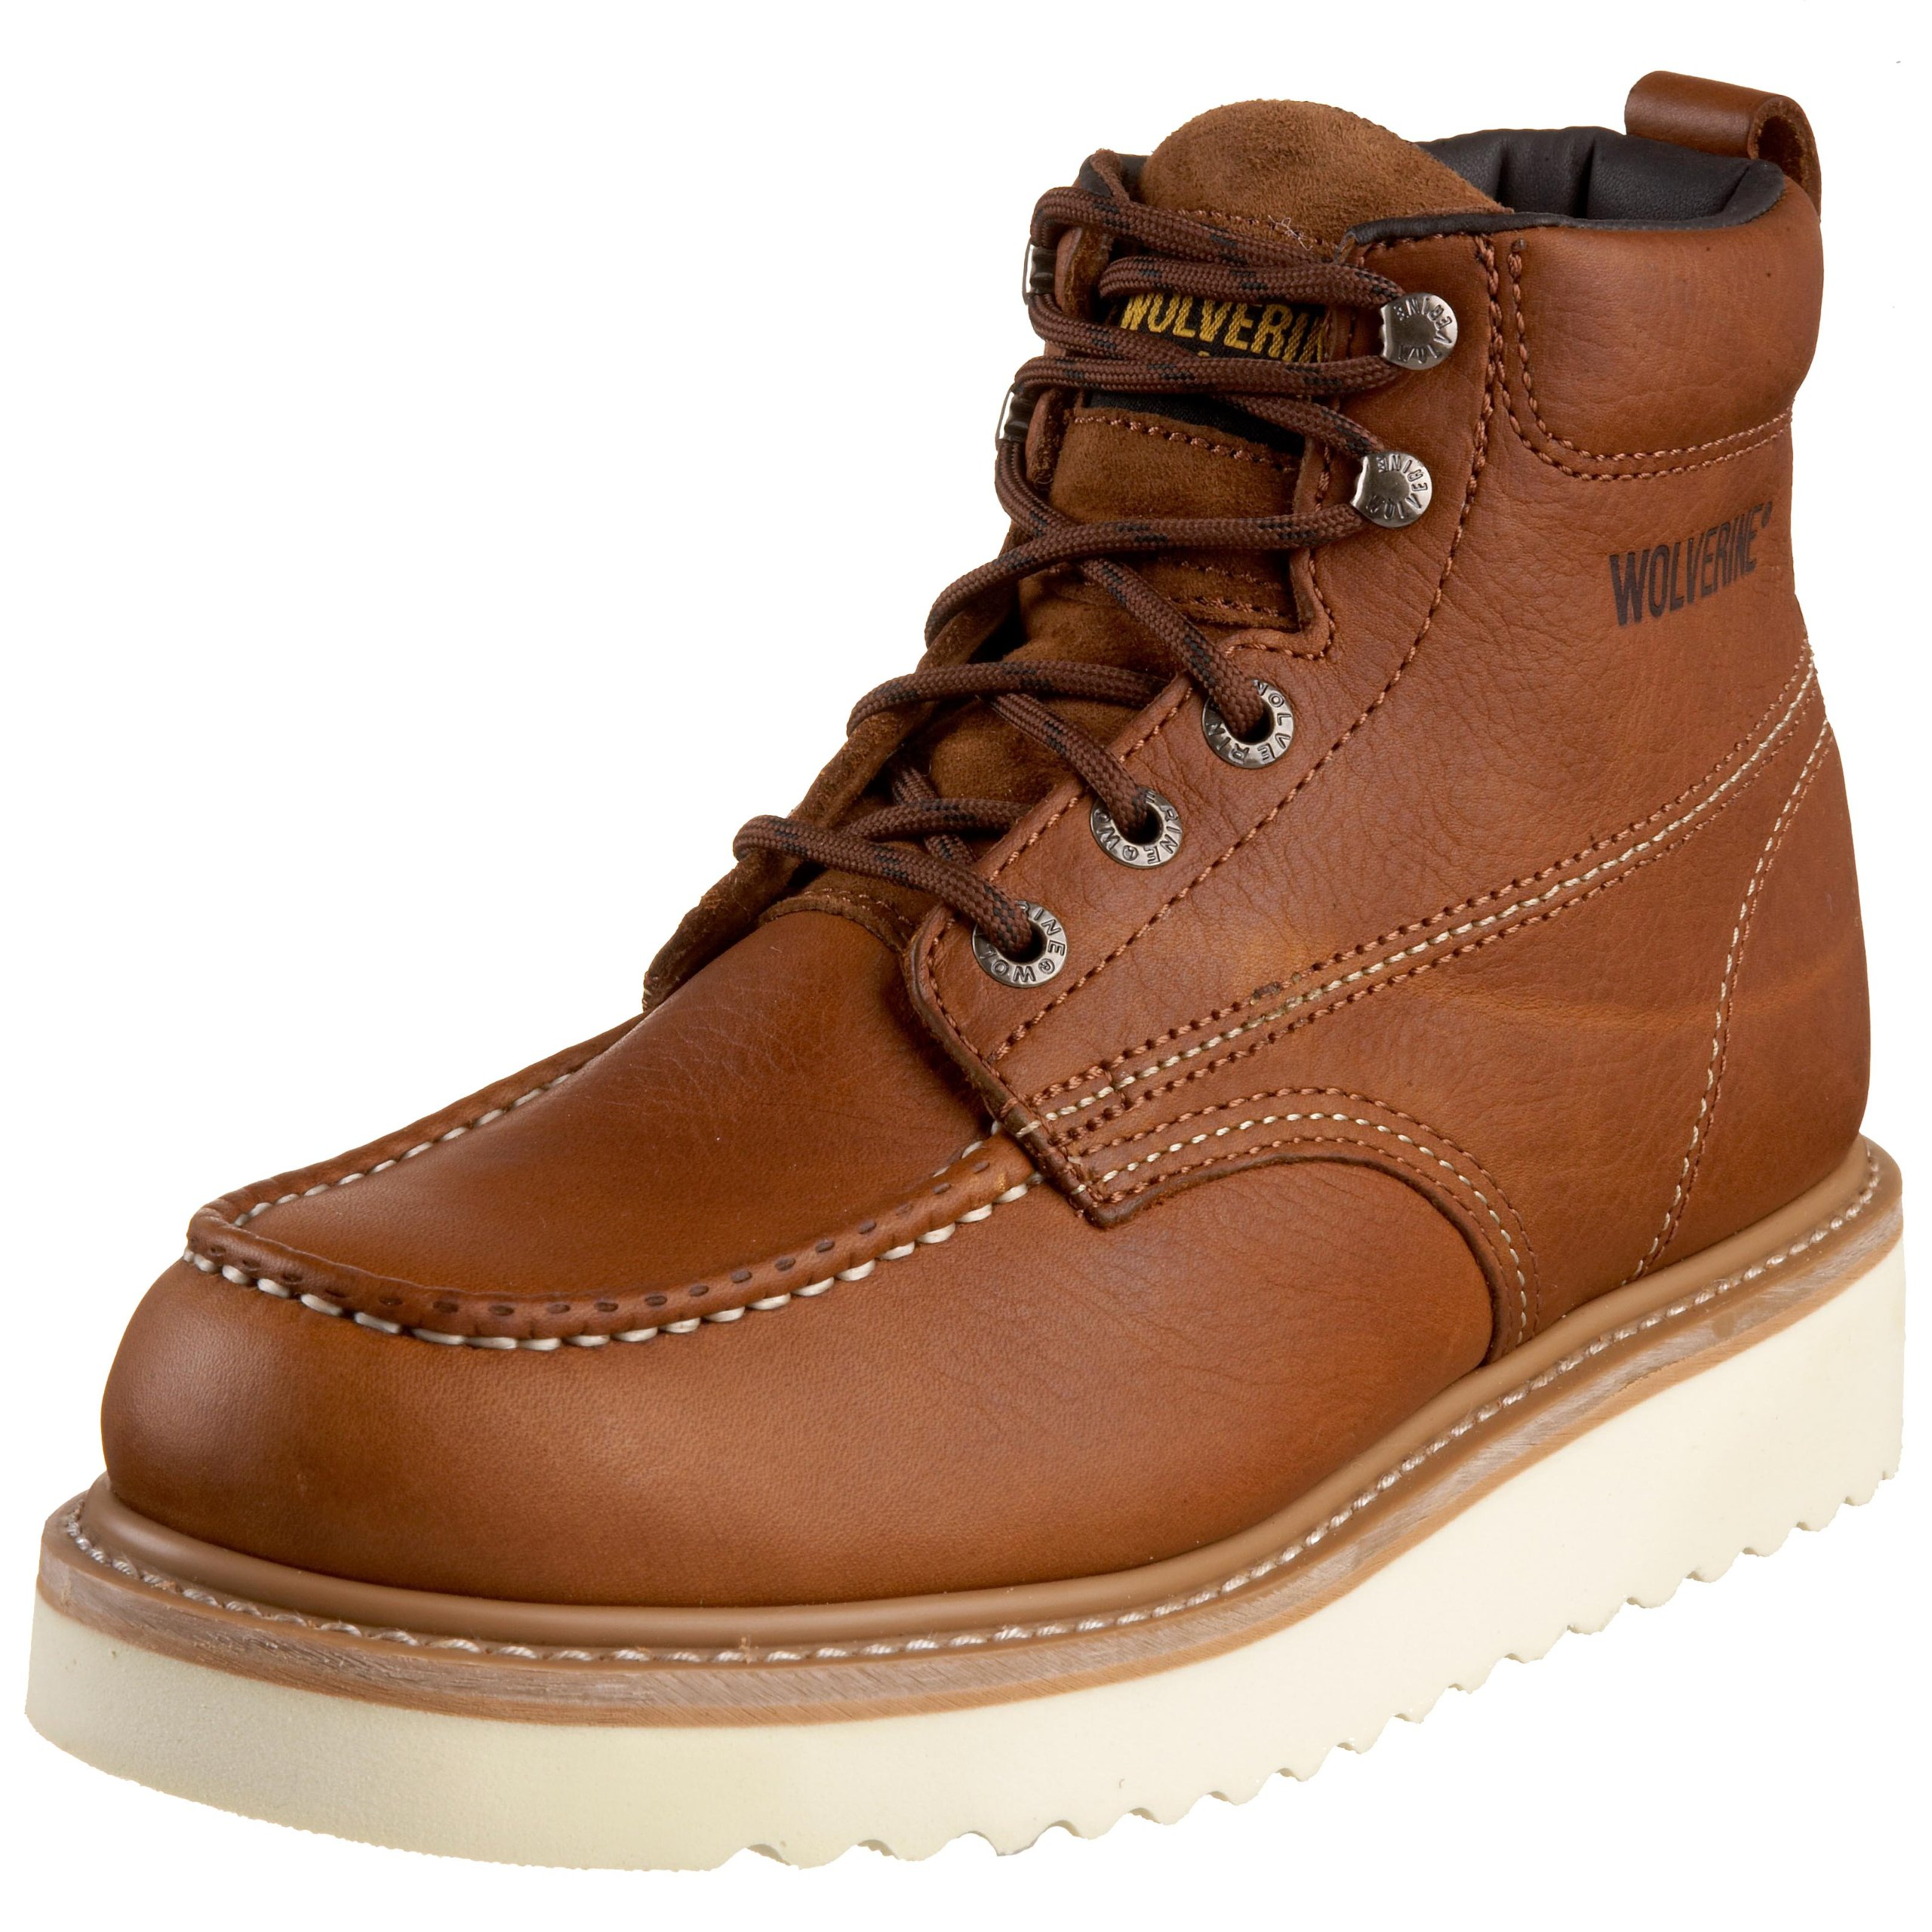 Wolverine Men's W08288 Boot, Brown, 10.5 M US by Wolverine